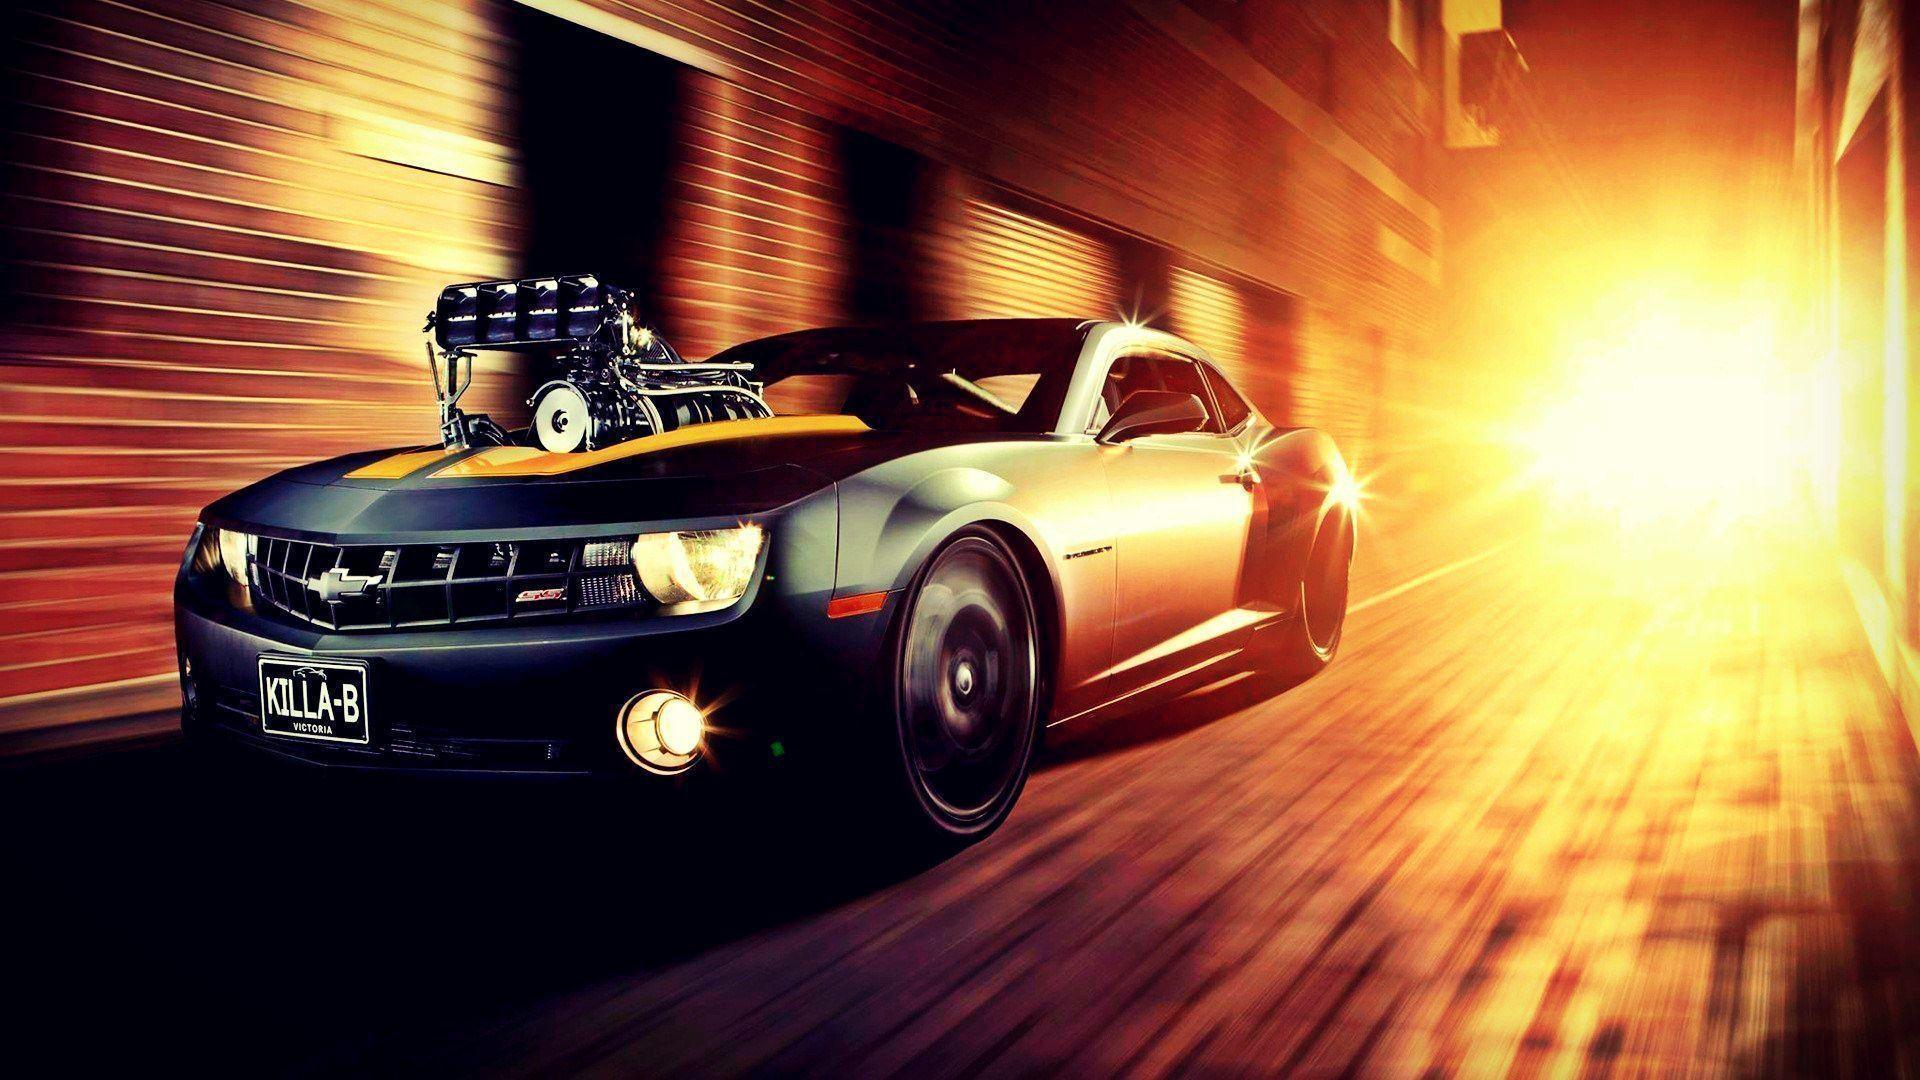 Cool Car Backgrounds Wallpapers 1920x1080